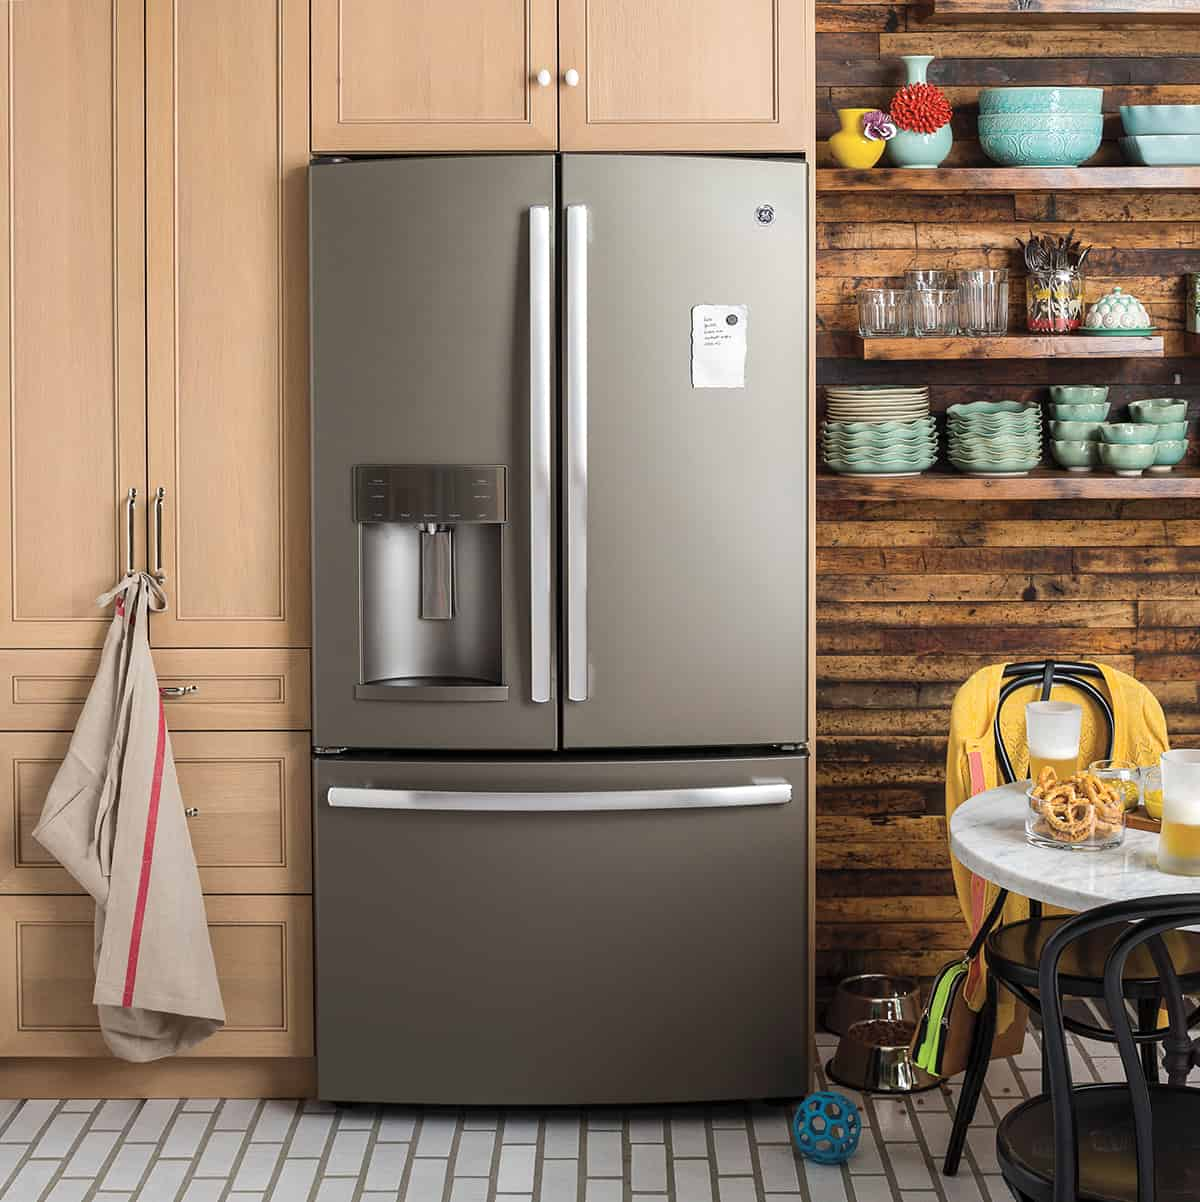 What The Best Time To Buy Kitchen Appliances